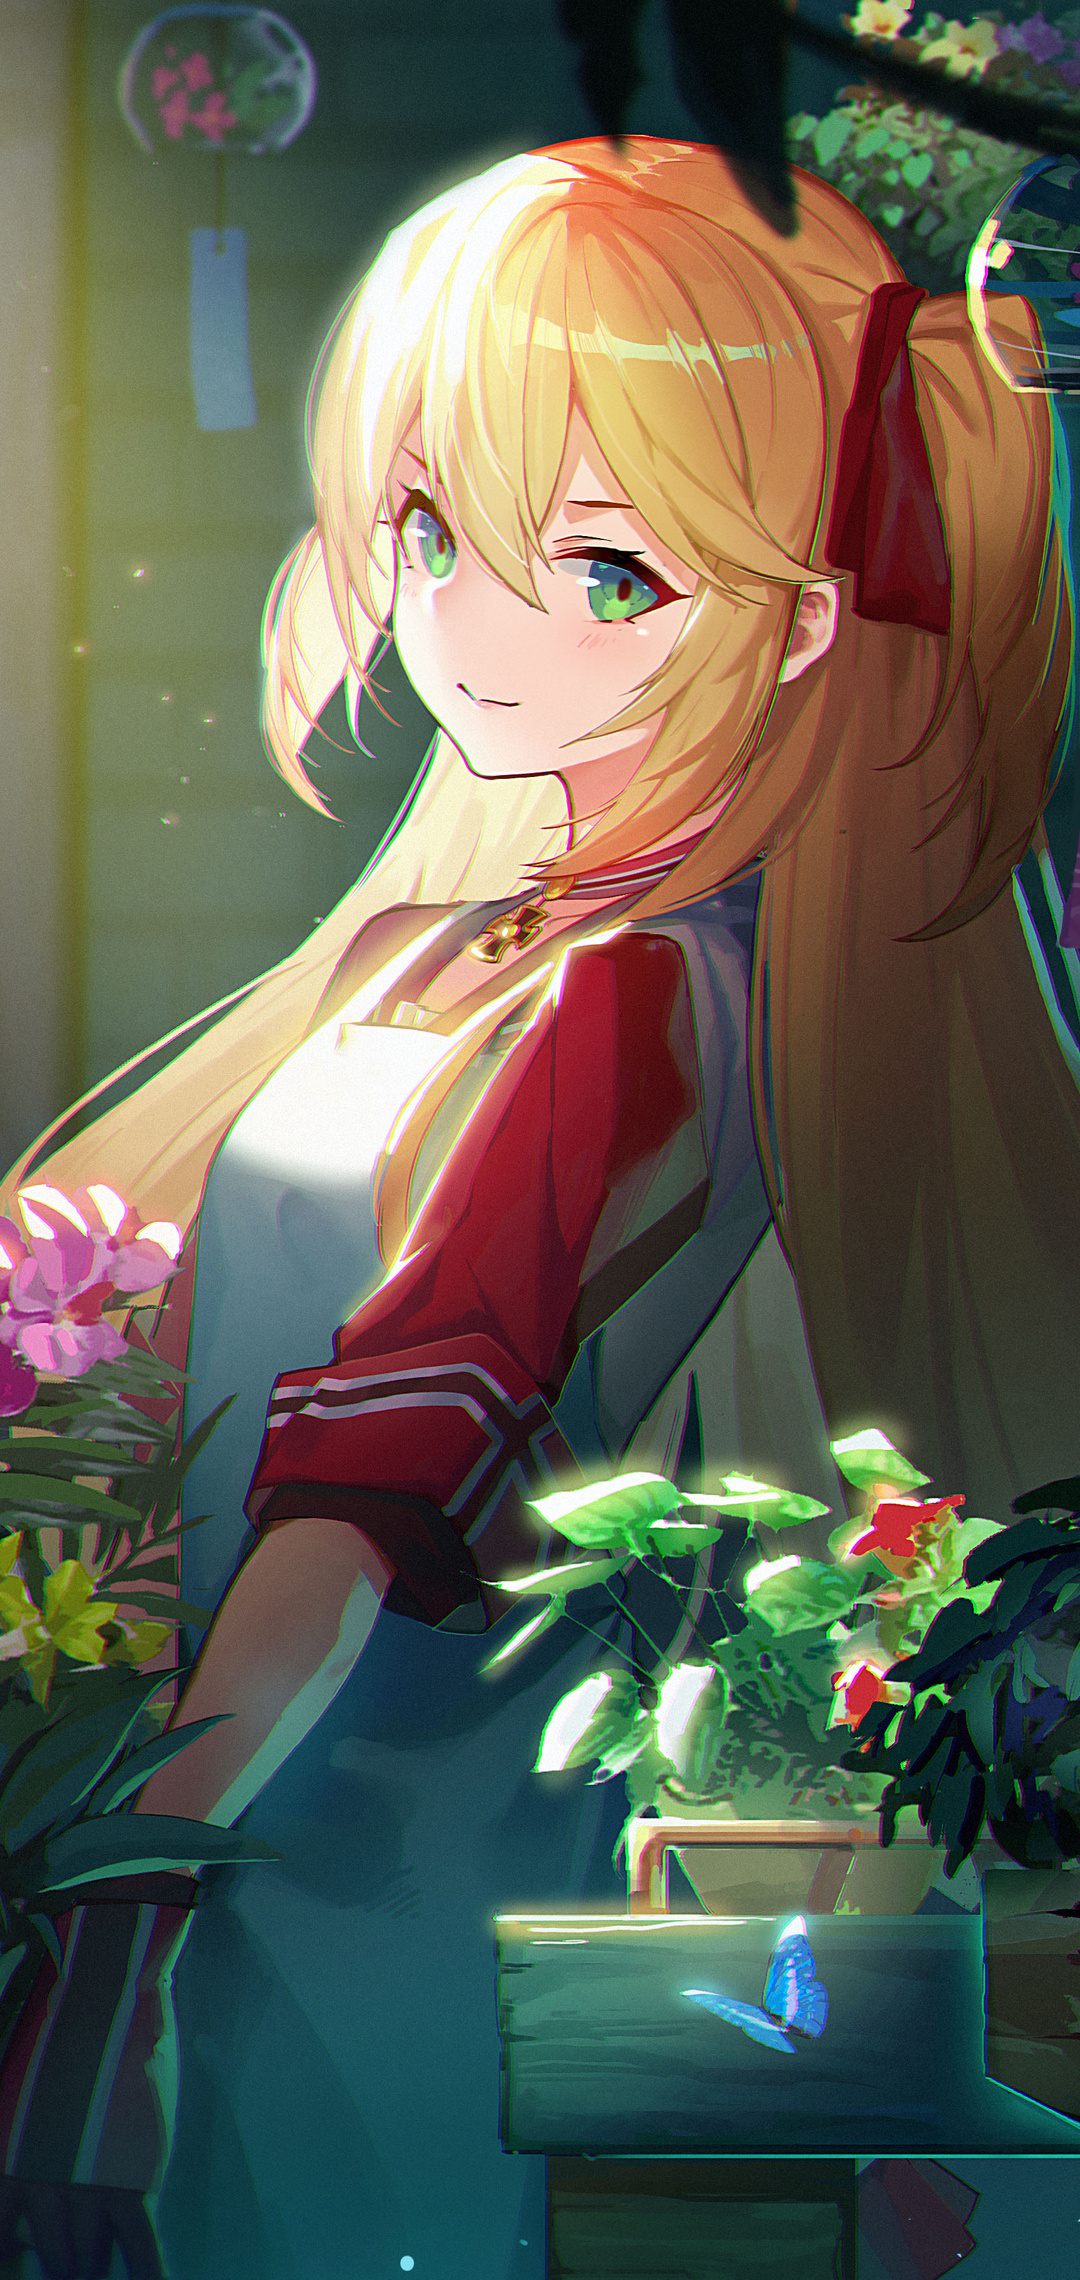 1080x2280 Anime Flowers Blonde Twintails Girl One Plus 6 Huawei P20